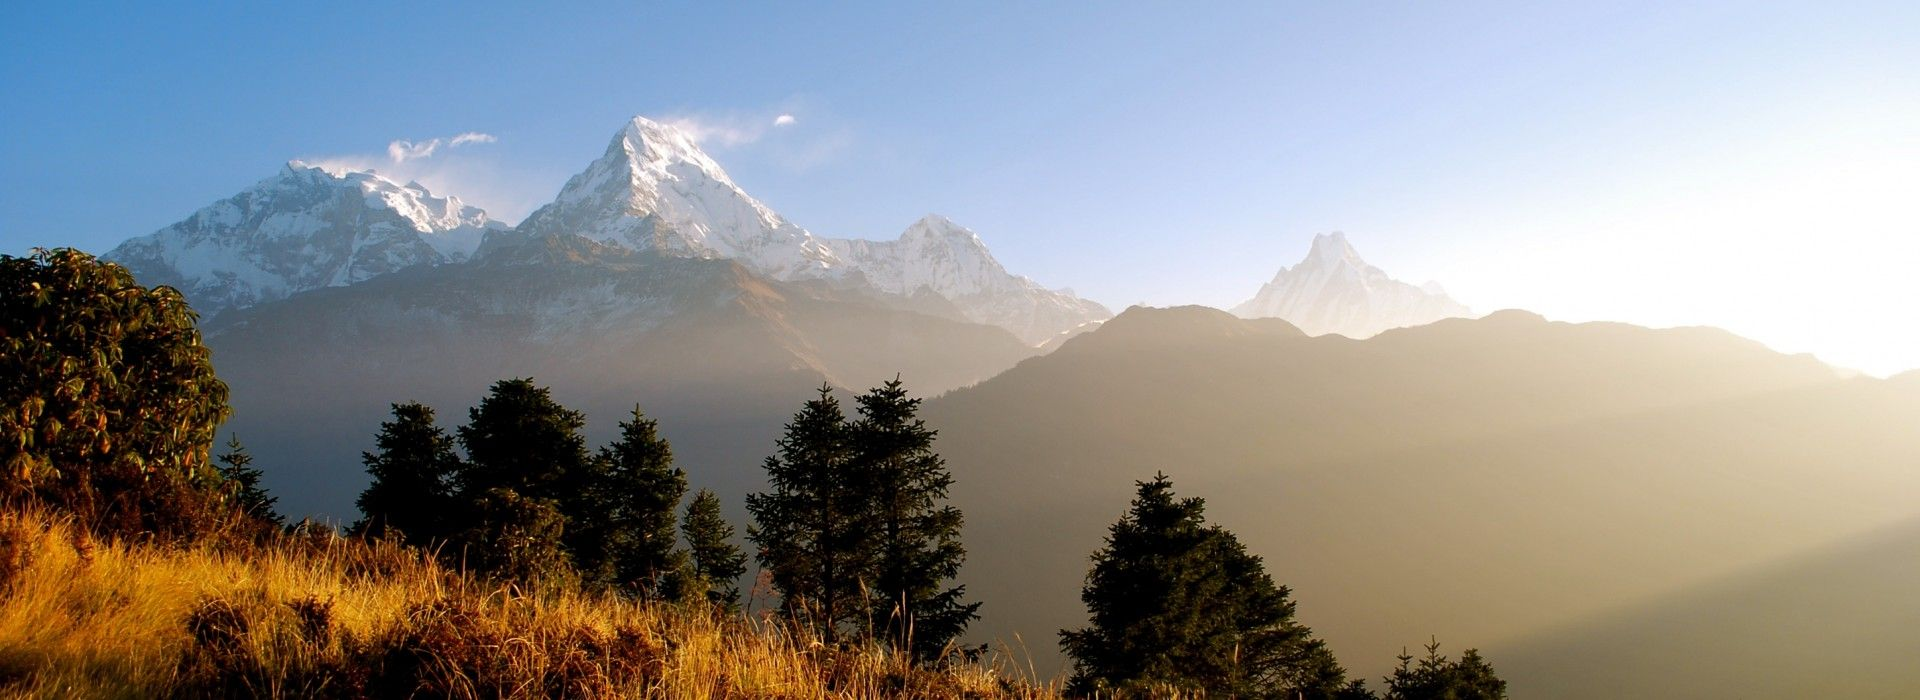 Trekking Tours in Mera Peak